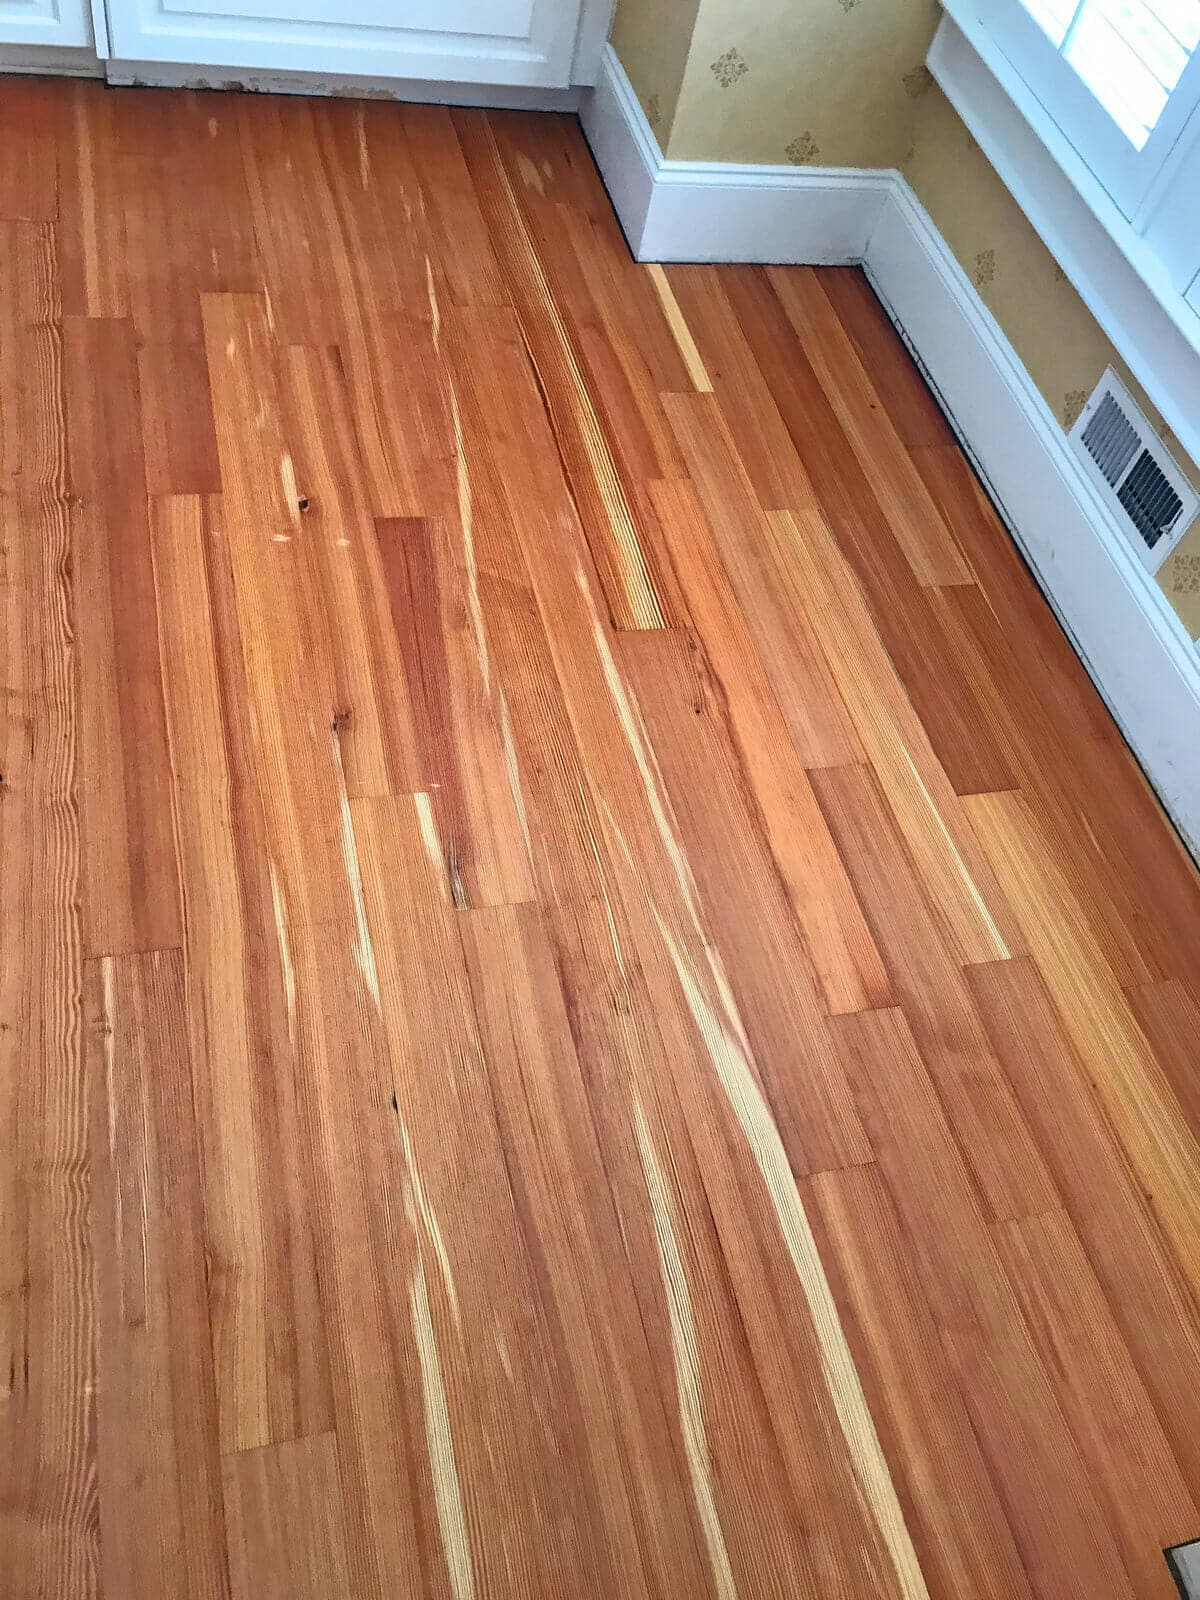 narrow width heart pine vertical grain with contrasts in coloration